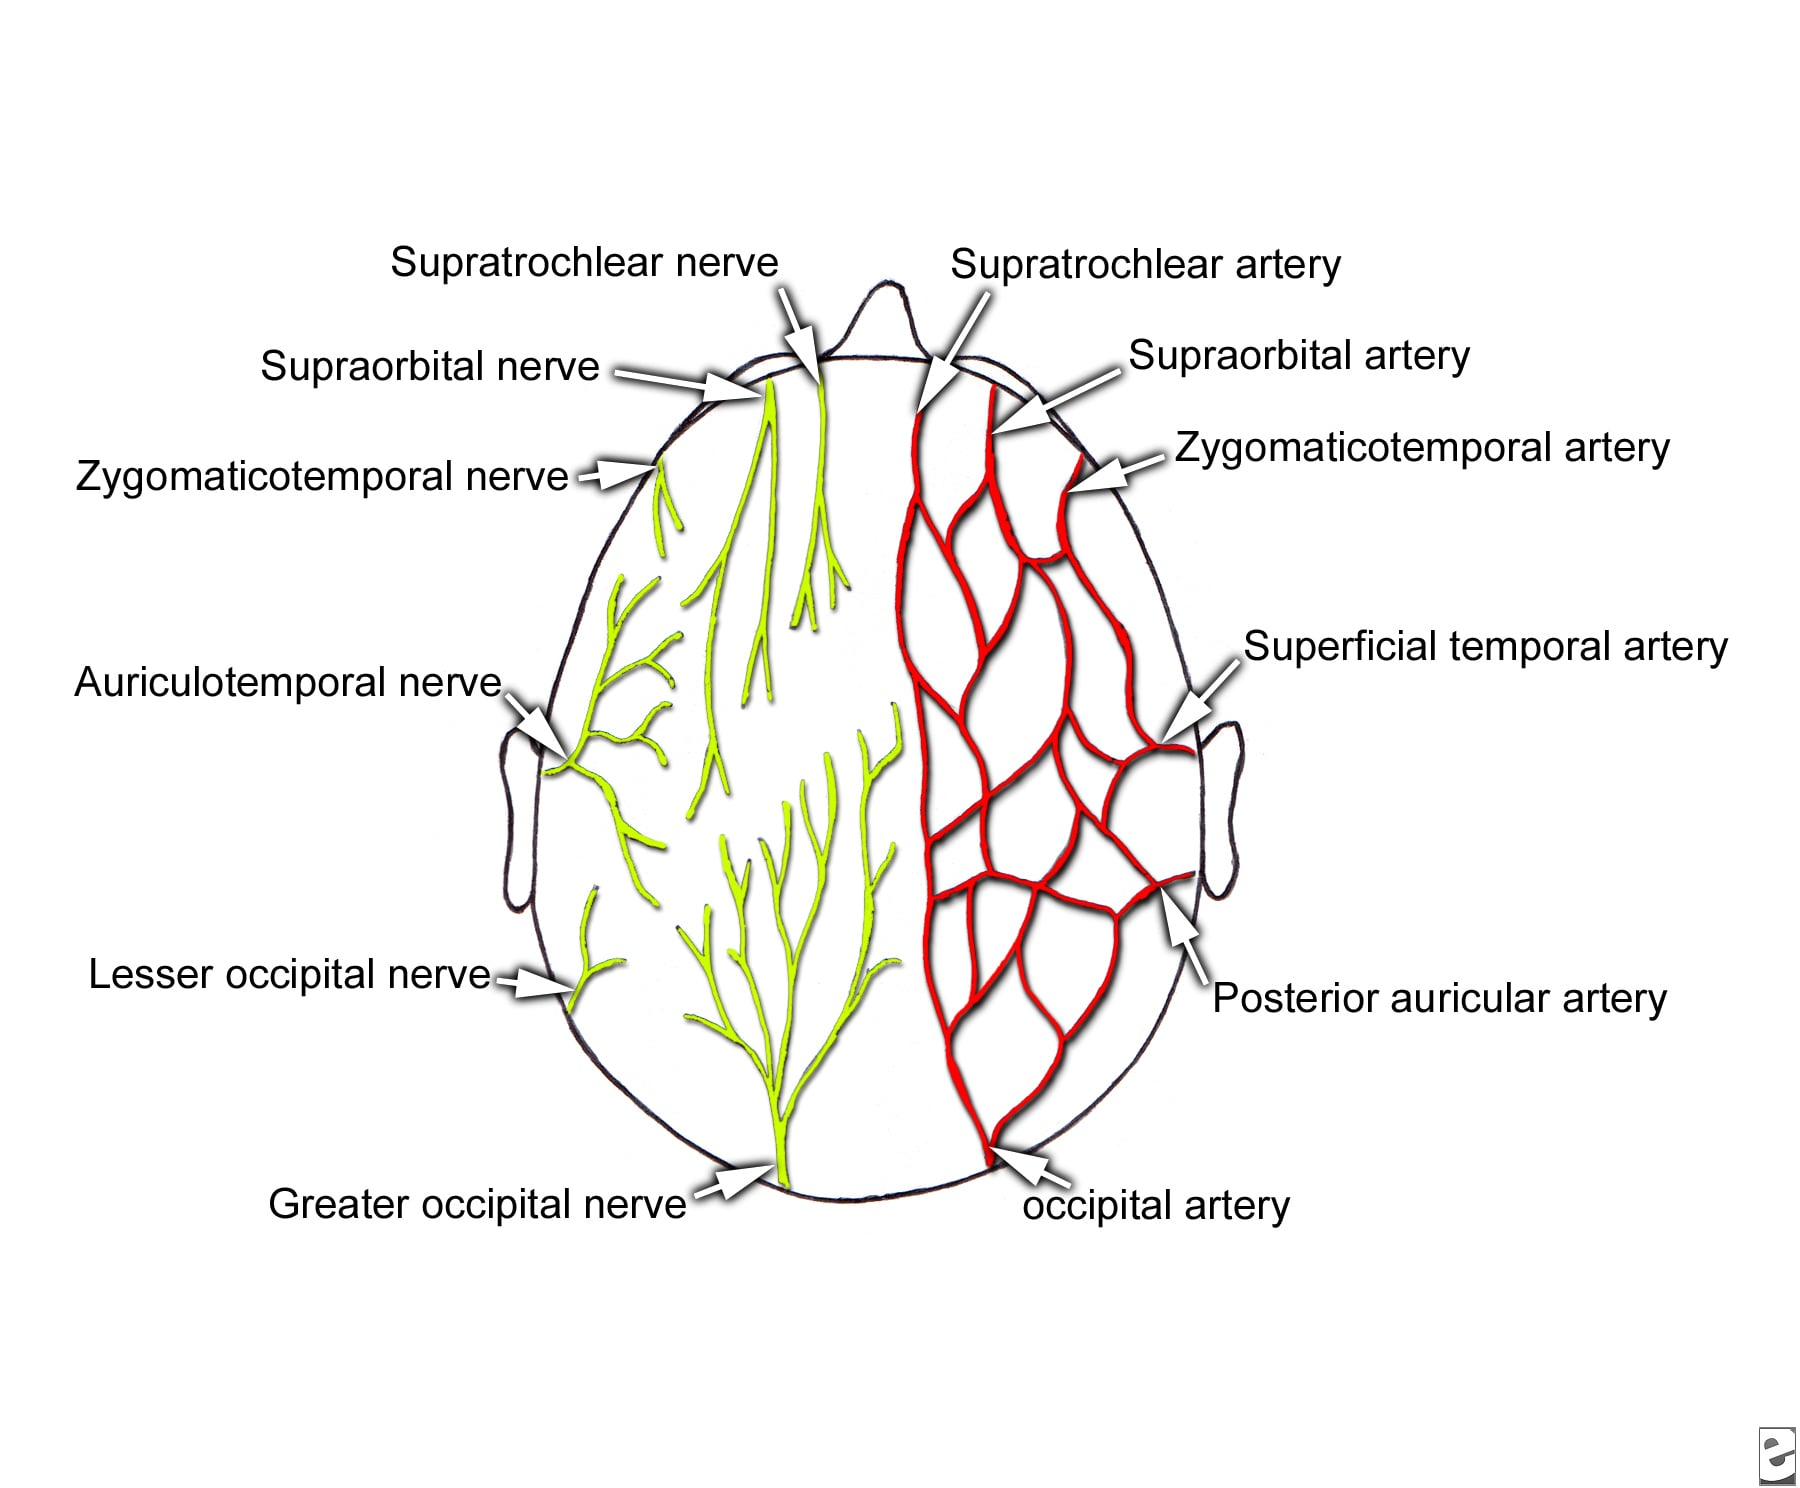 hight resolution of sensory innervation and arterial supply of the scalp from snell rs clinical anatomy for medical students 5th ed